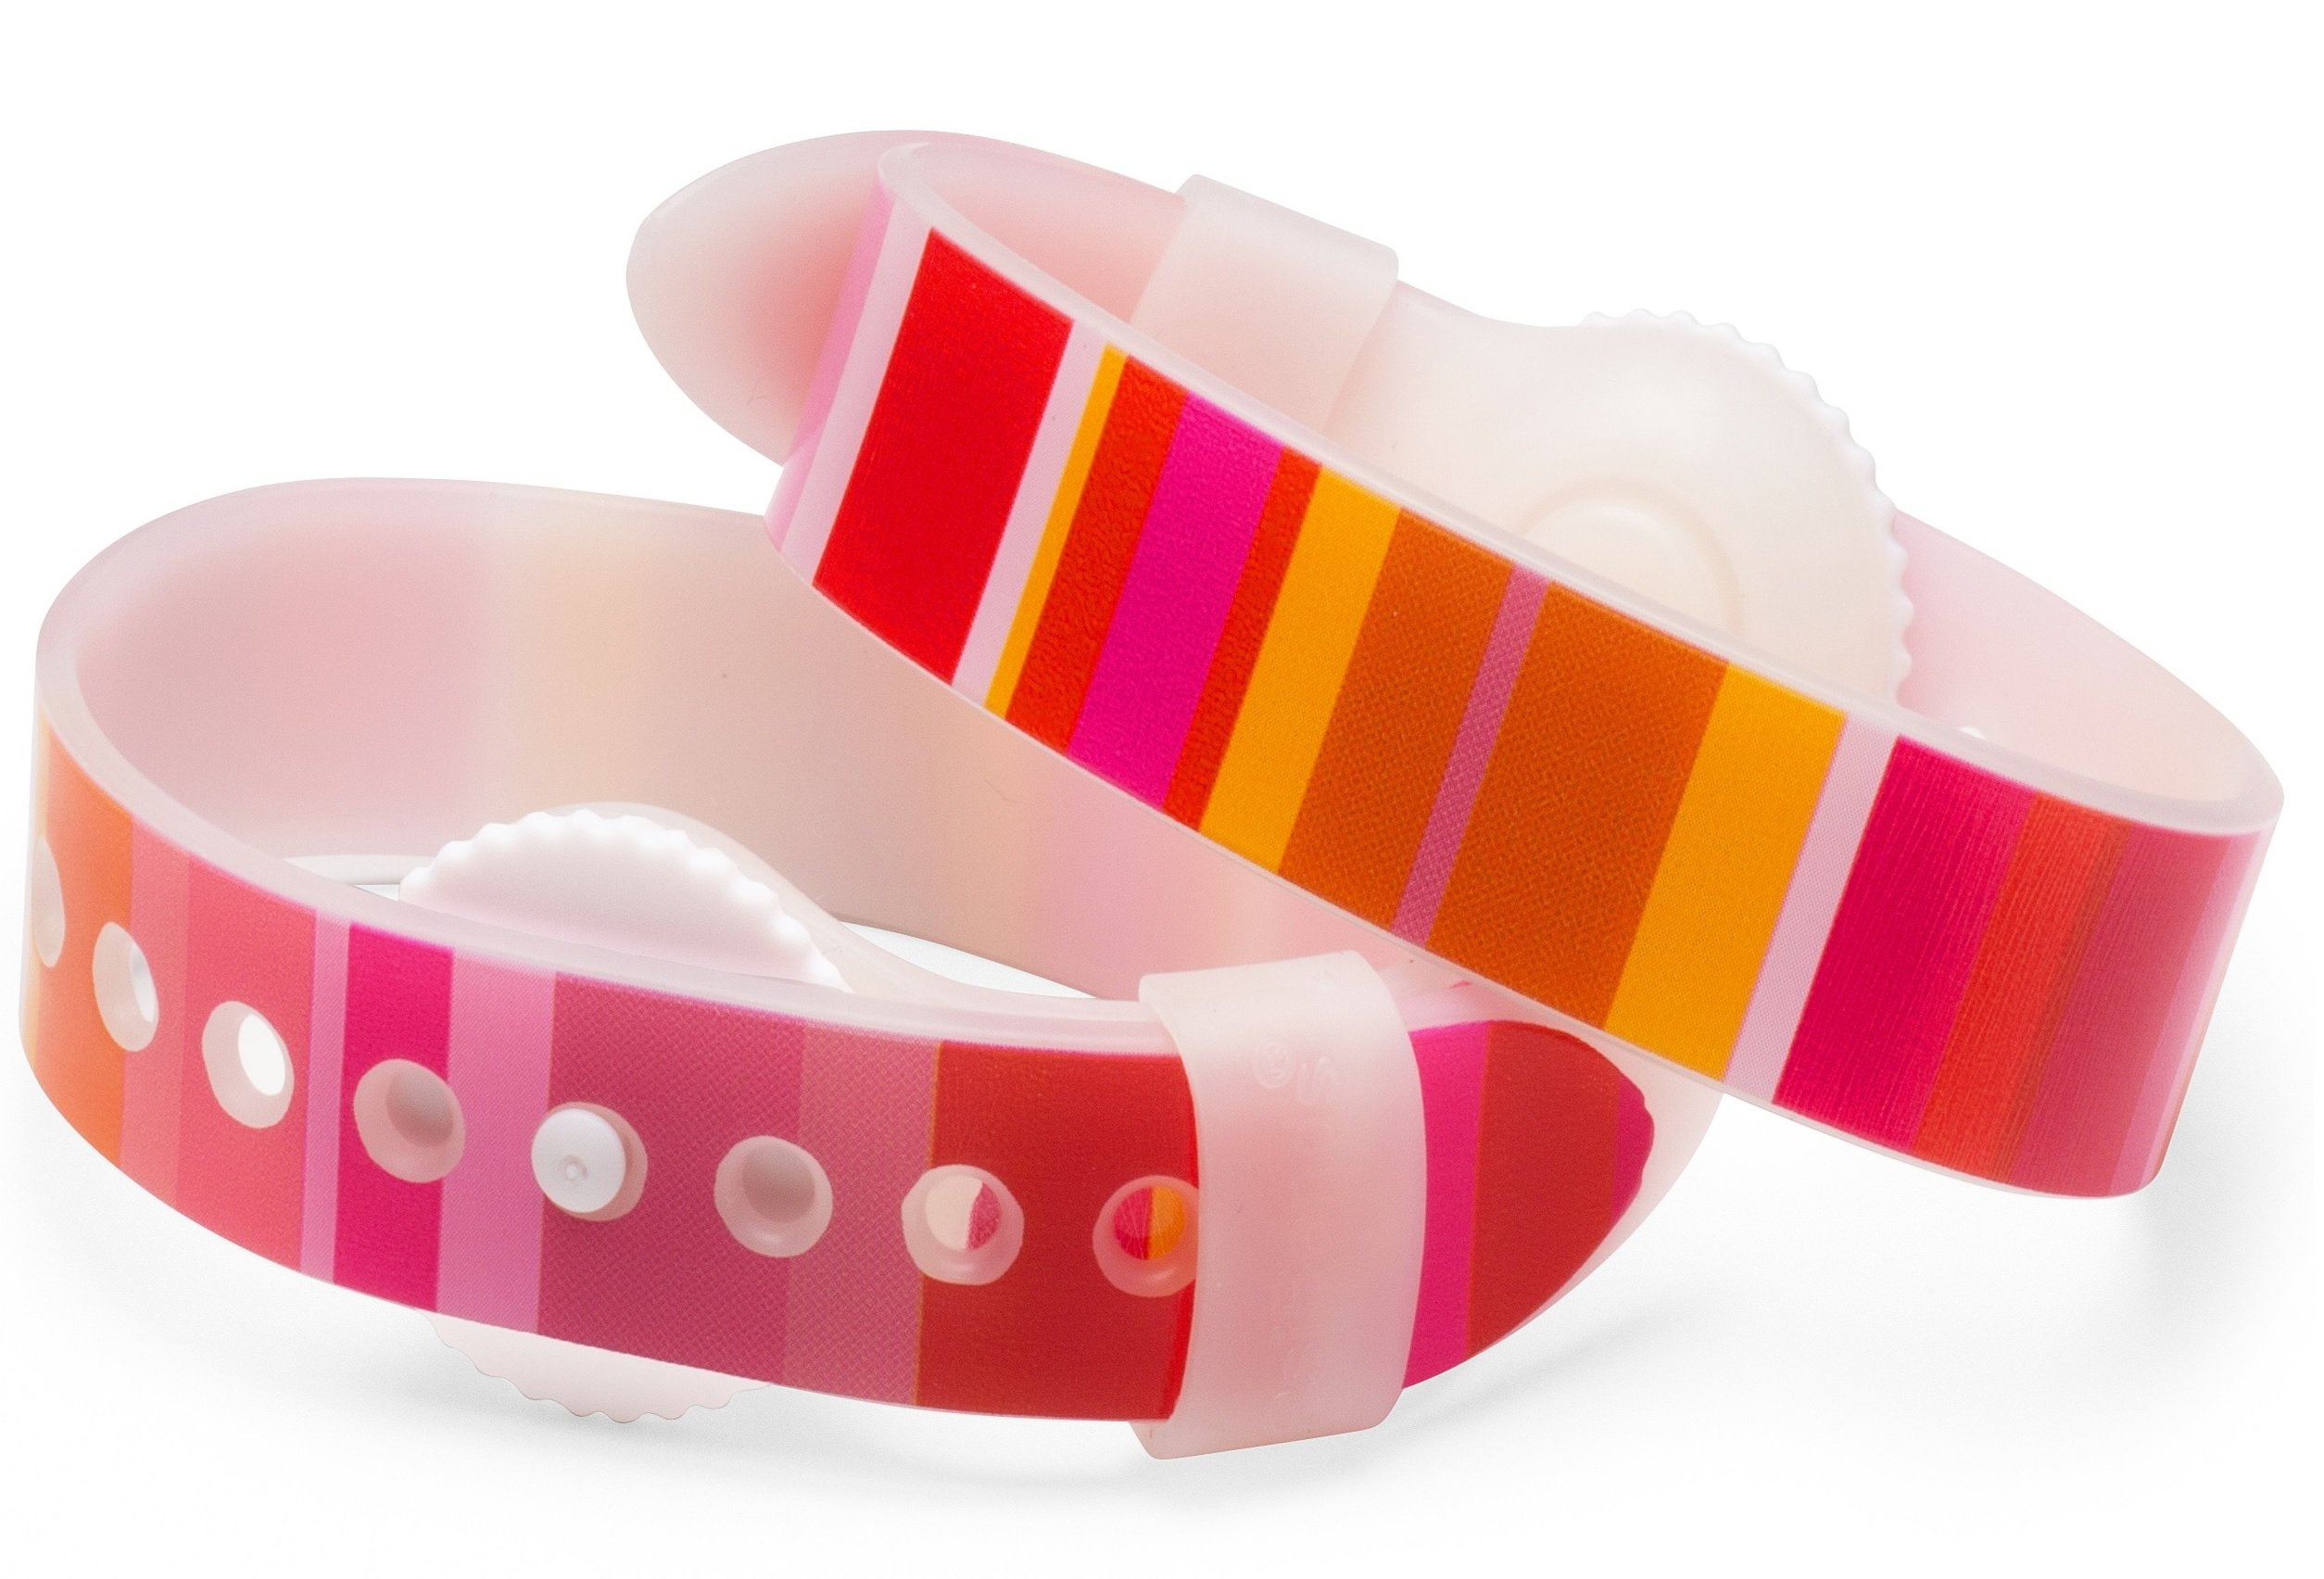 Psi Bands Acupressure Wrist Bands for the Relief of Nausea - Color Play